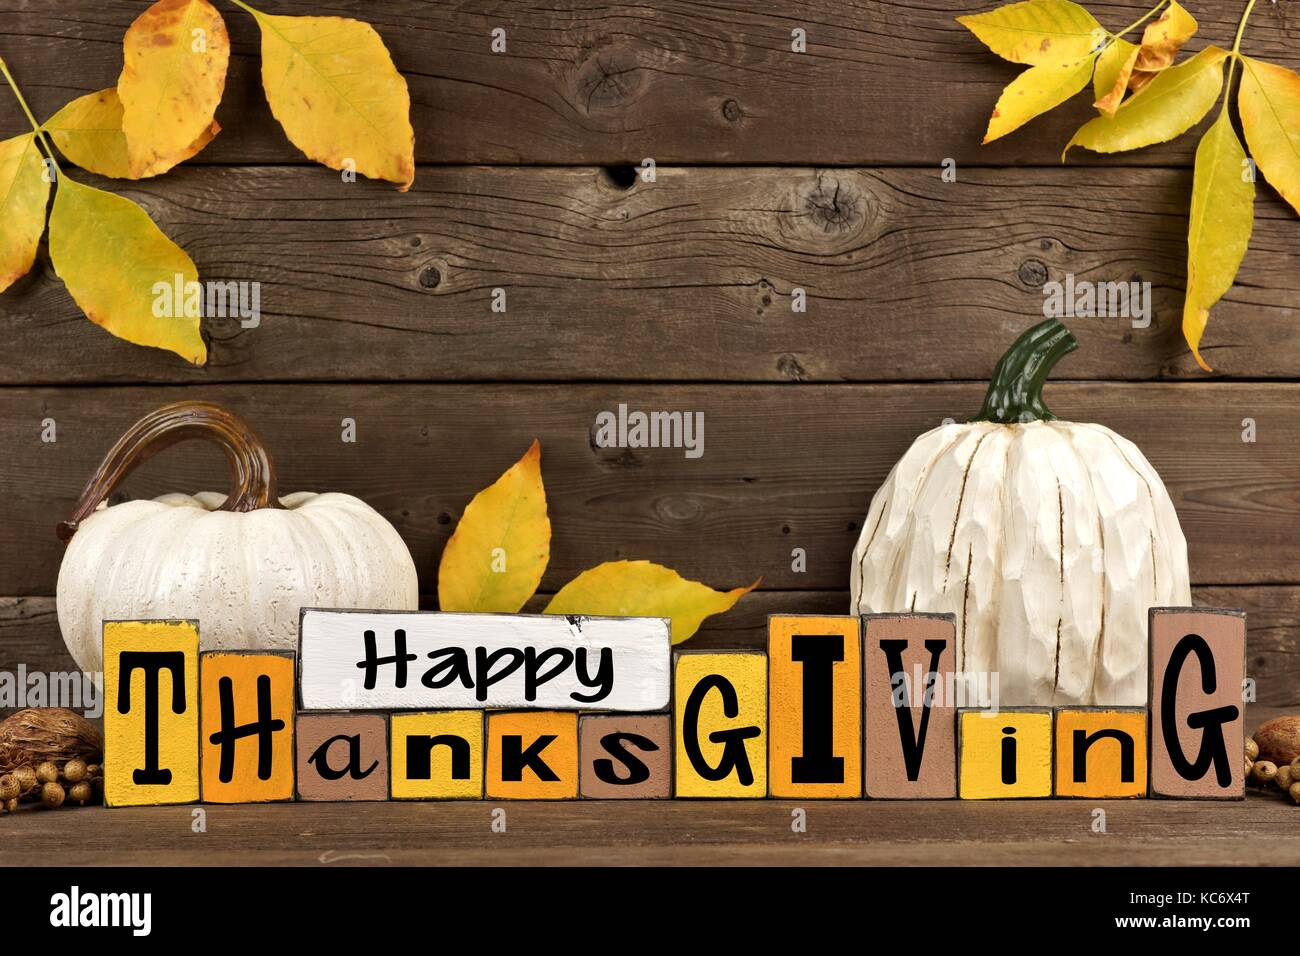 Happy Thanksgiving Wood Sign With White Pumpkins And Leaves Against A Rustic Wooden Background